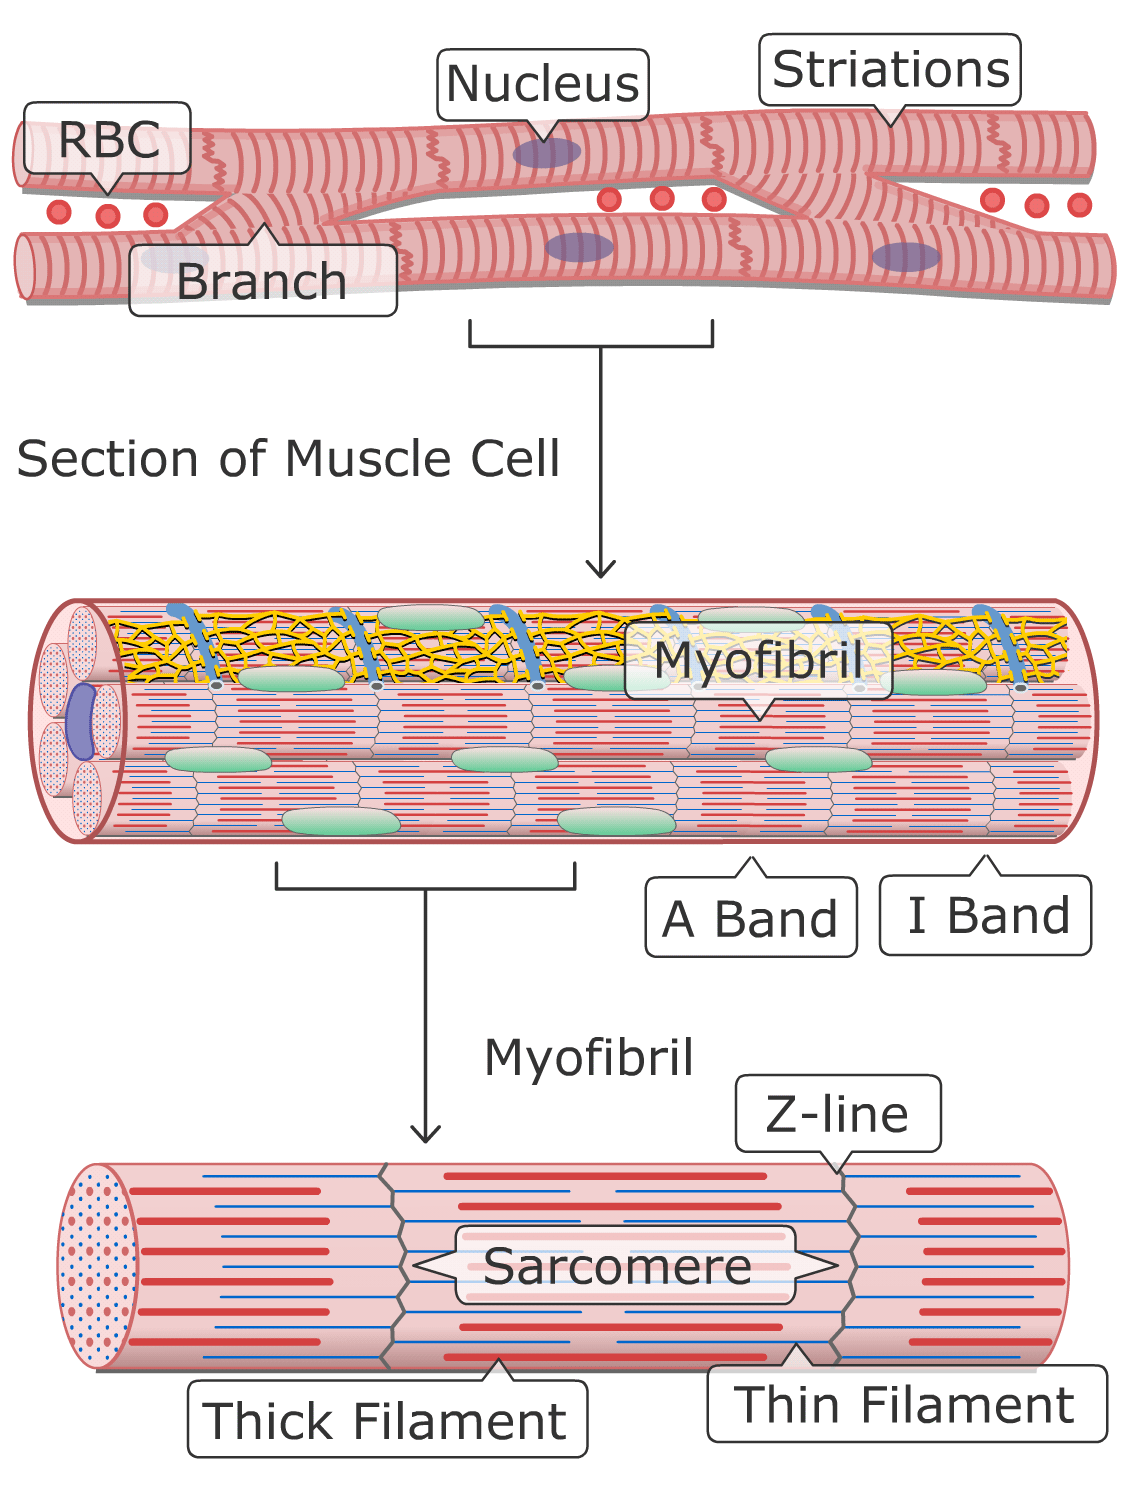 General structure of cardiac muscle cells (Illustration)